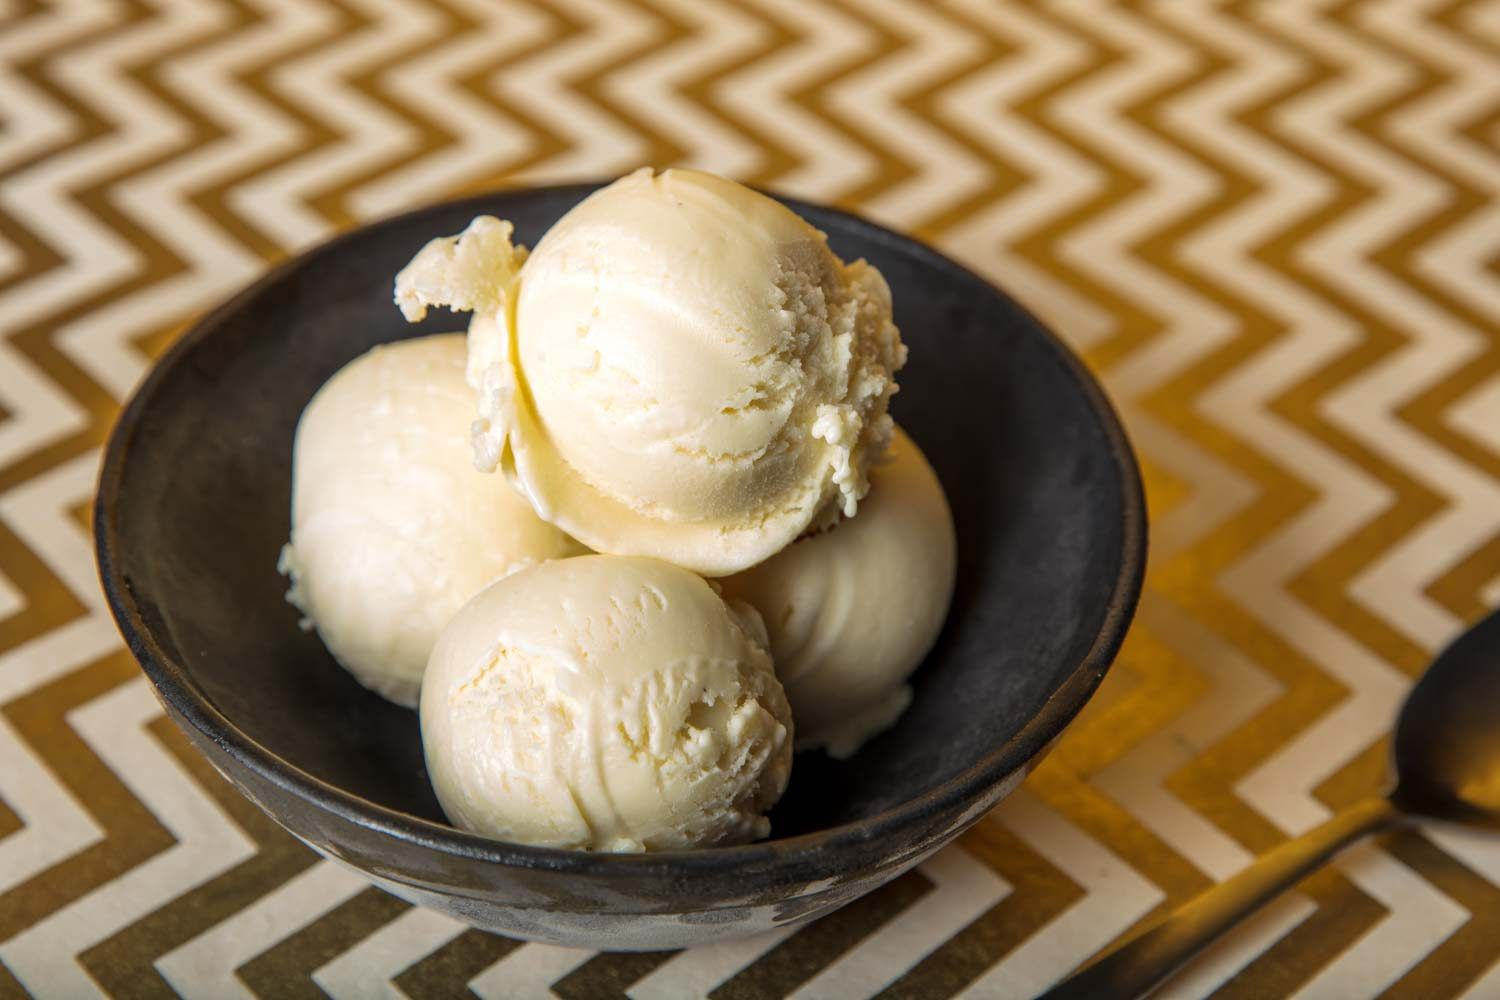 scoops of buttermilk ice cream in a bowl